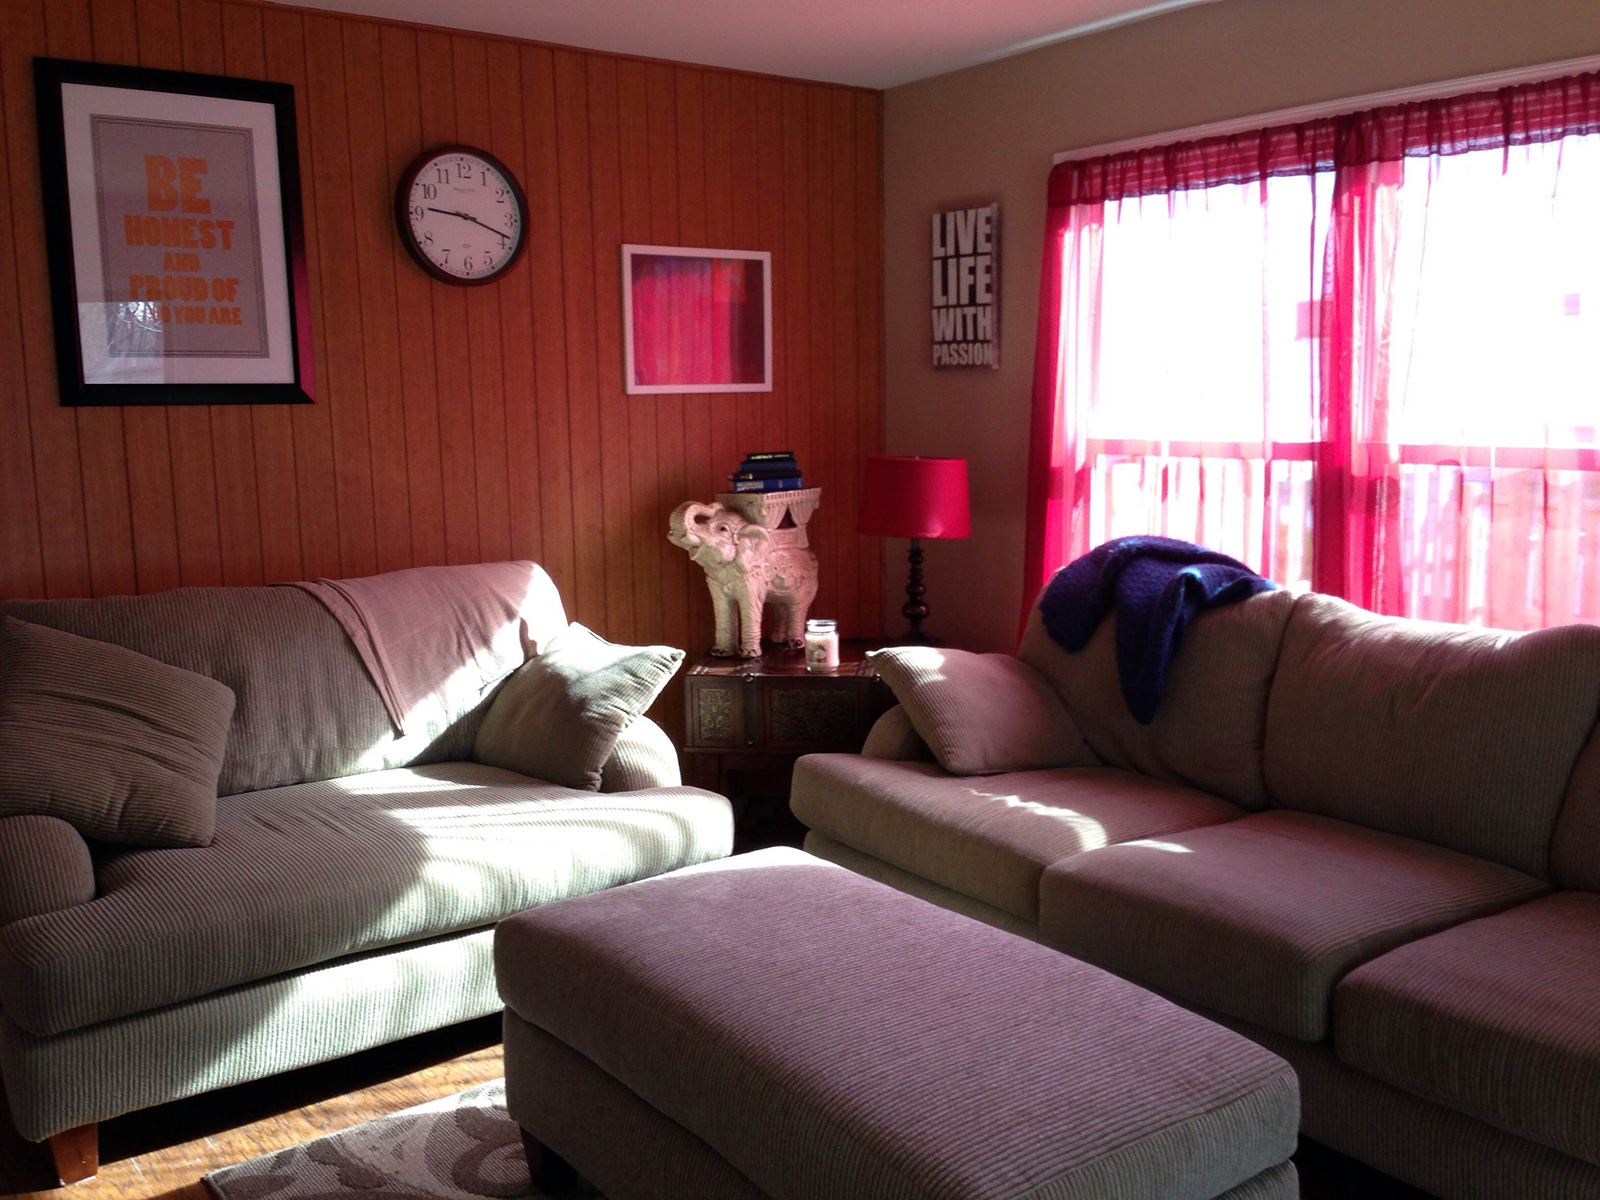 Calm and comfortable living rooms provide common areas for Independence Lodge resident male drug addicts and alcoholics